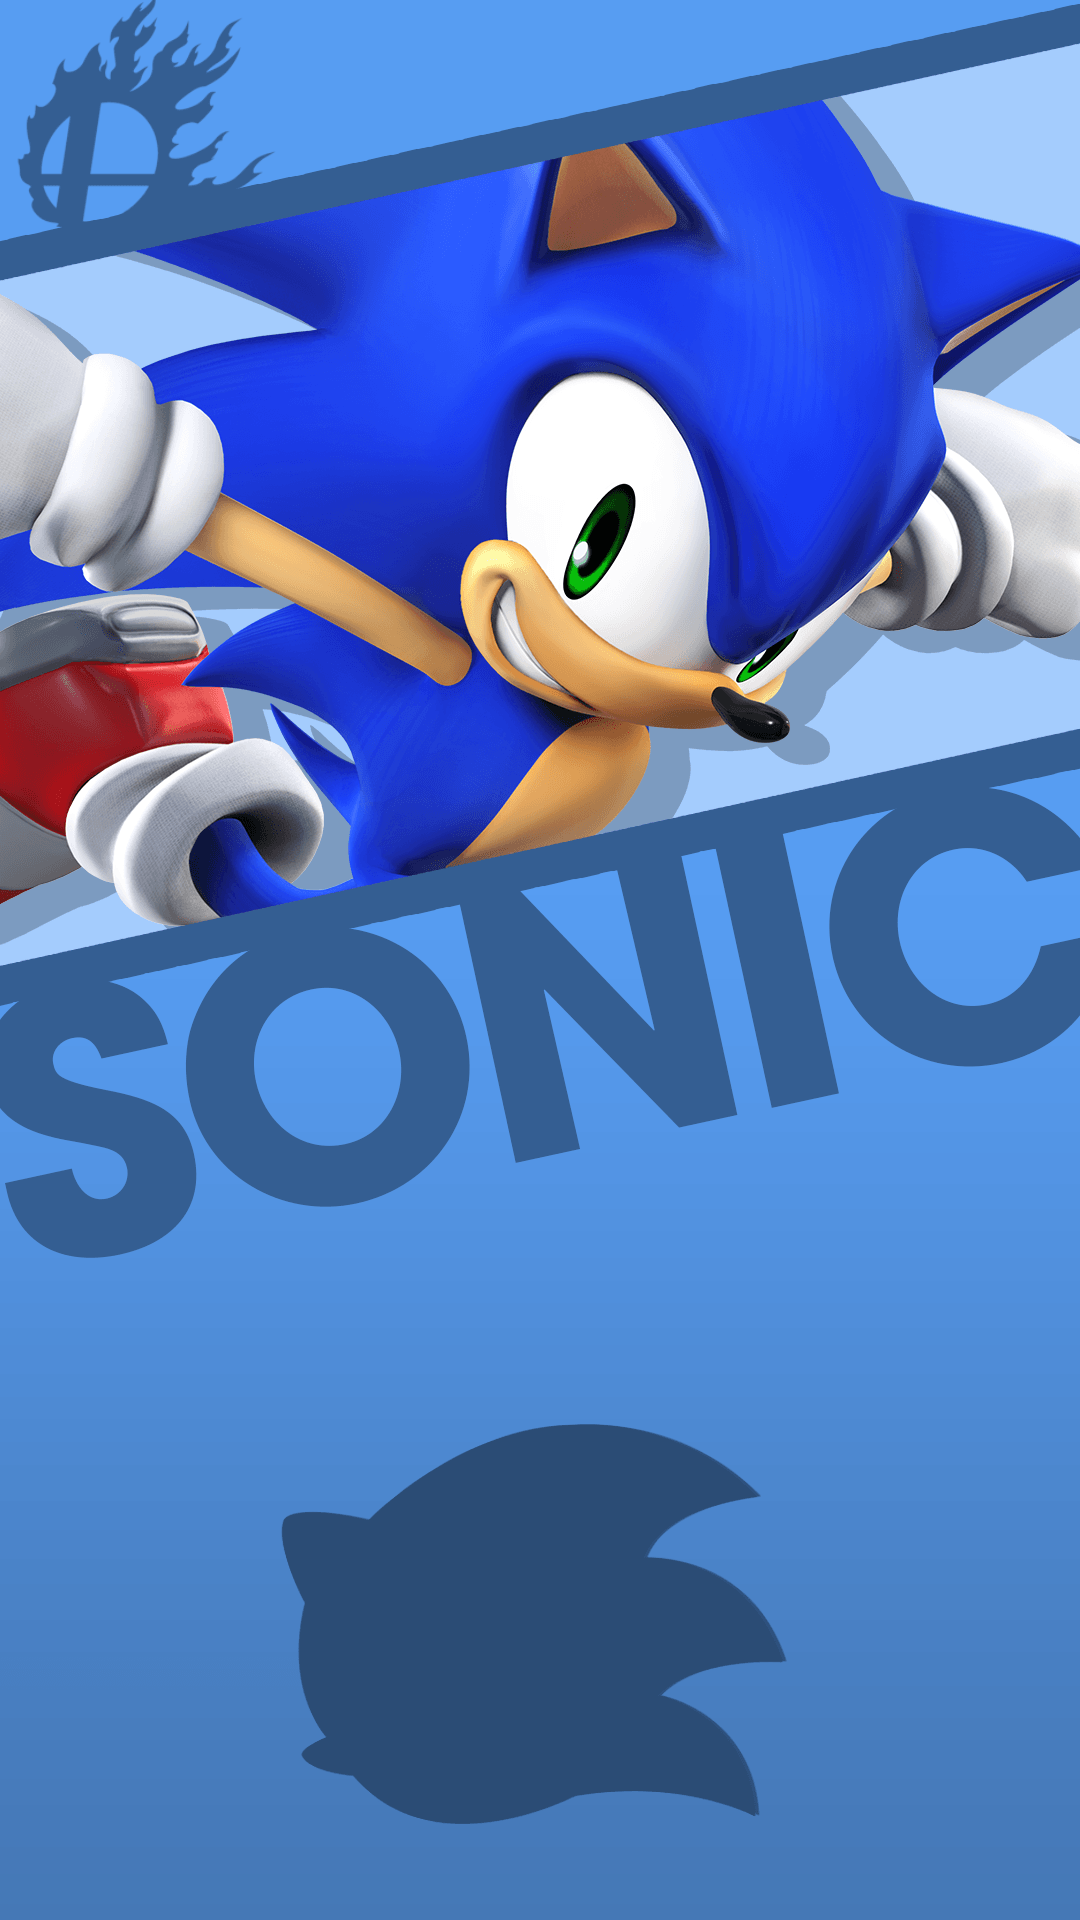 Sonic The Hedgehog Iphone Wallpapers Top Free Sonic The